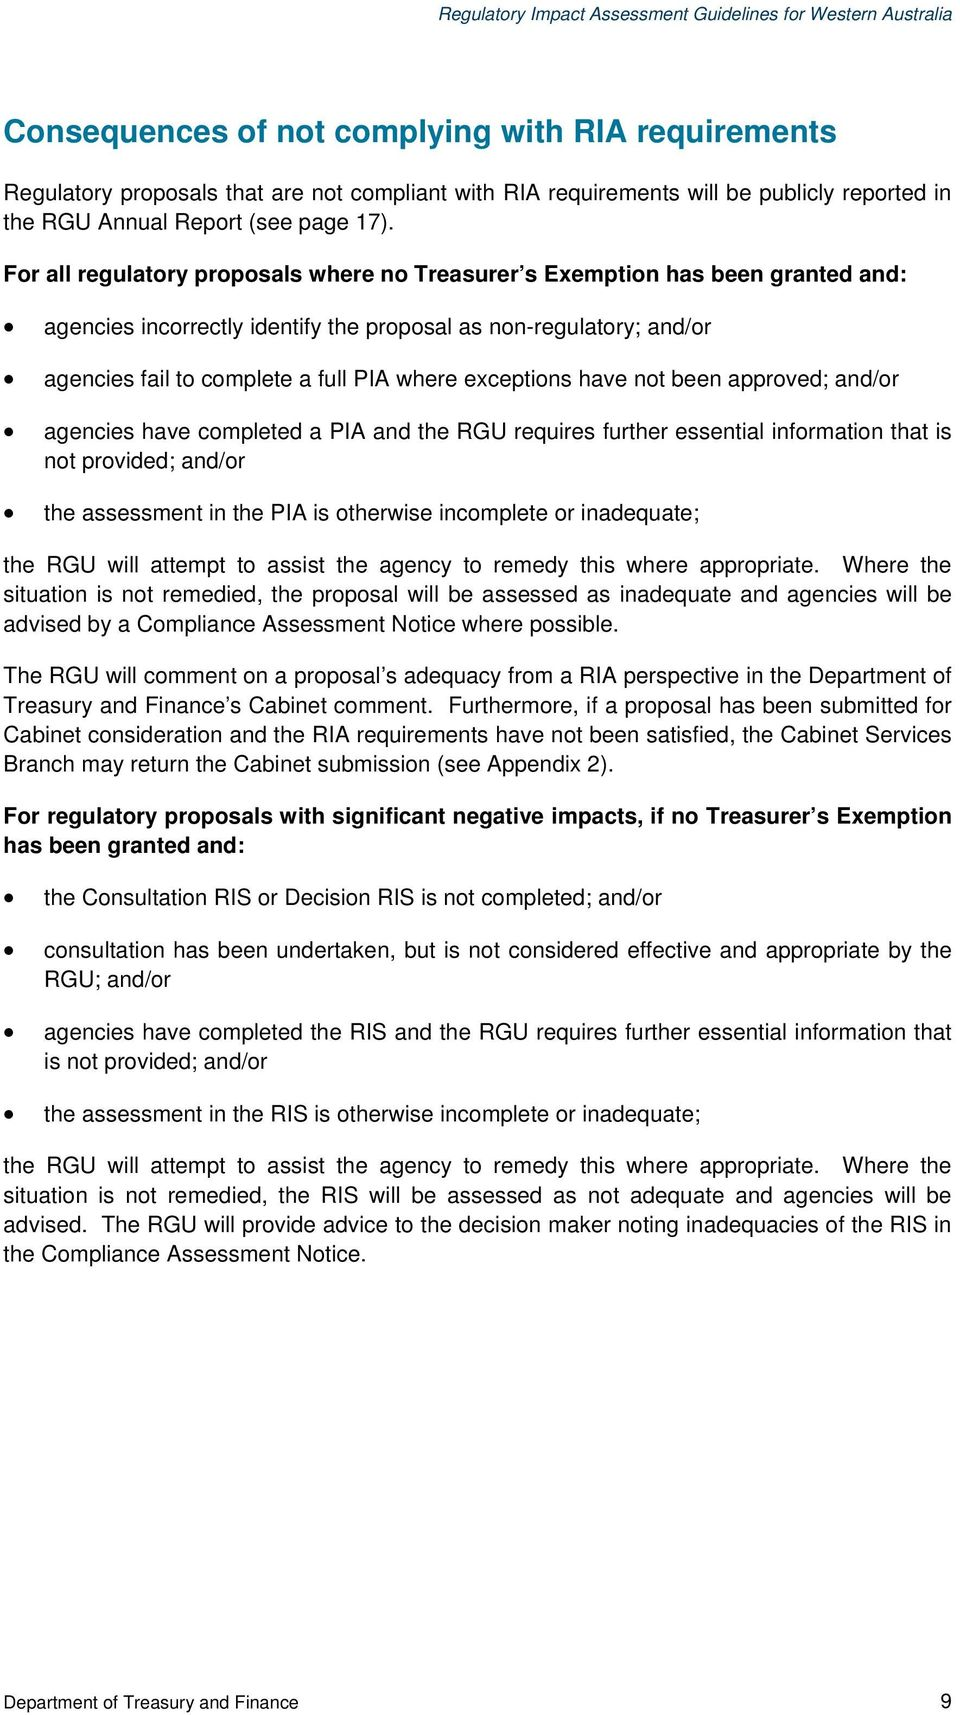 exceptions have not been approved; and/or agencies have completed a PIA and the RGU requires further essential information that is not provided; and/or the assessment in the PIA is otherwise